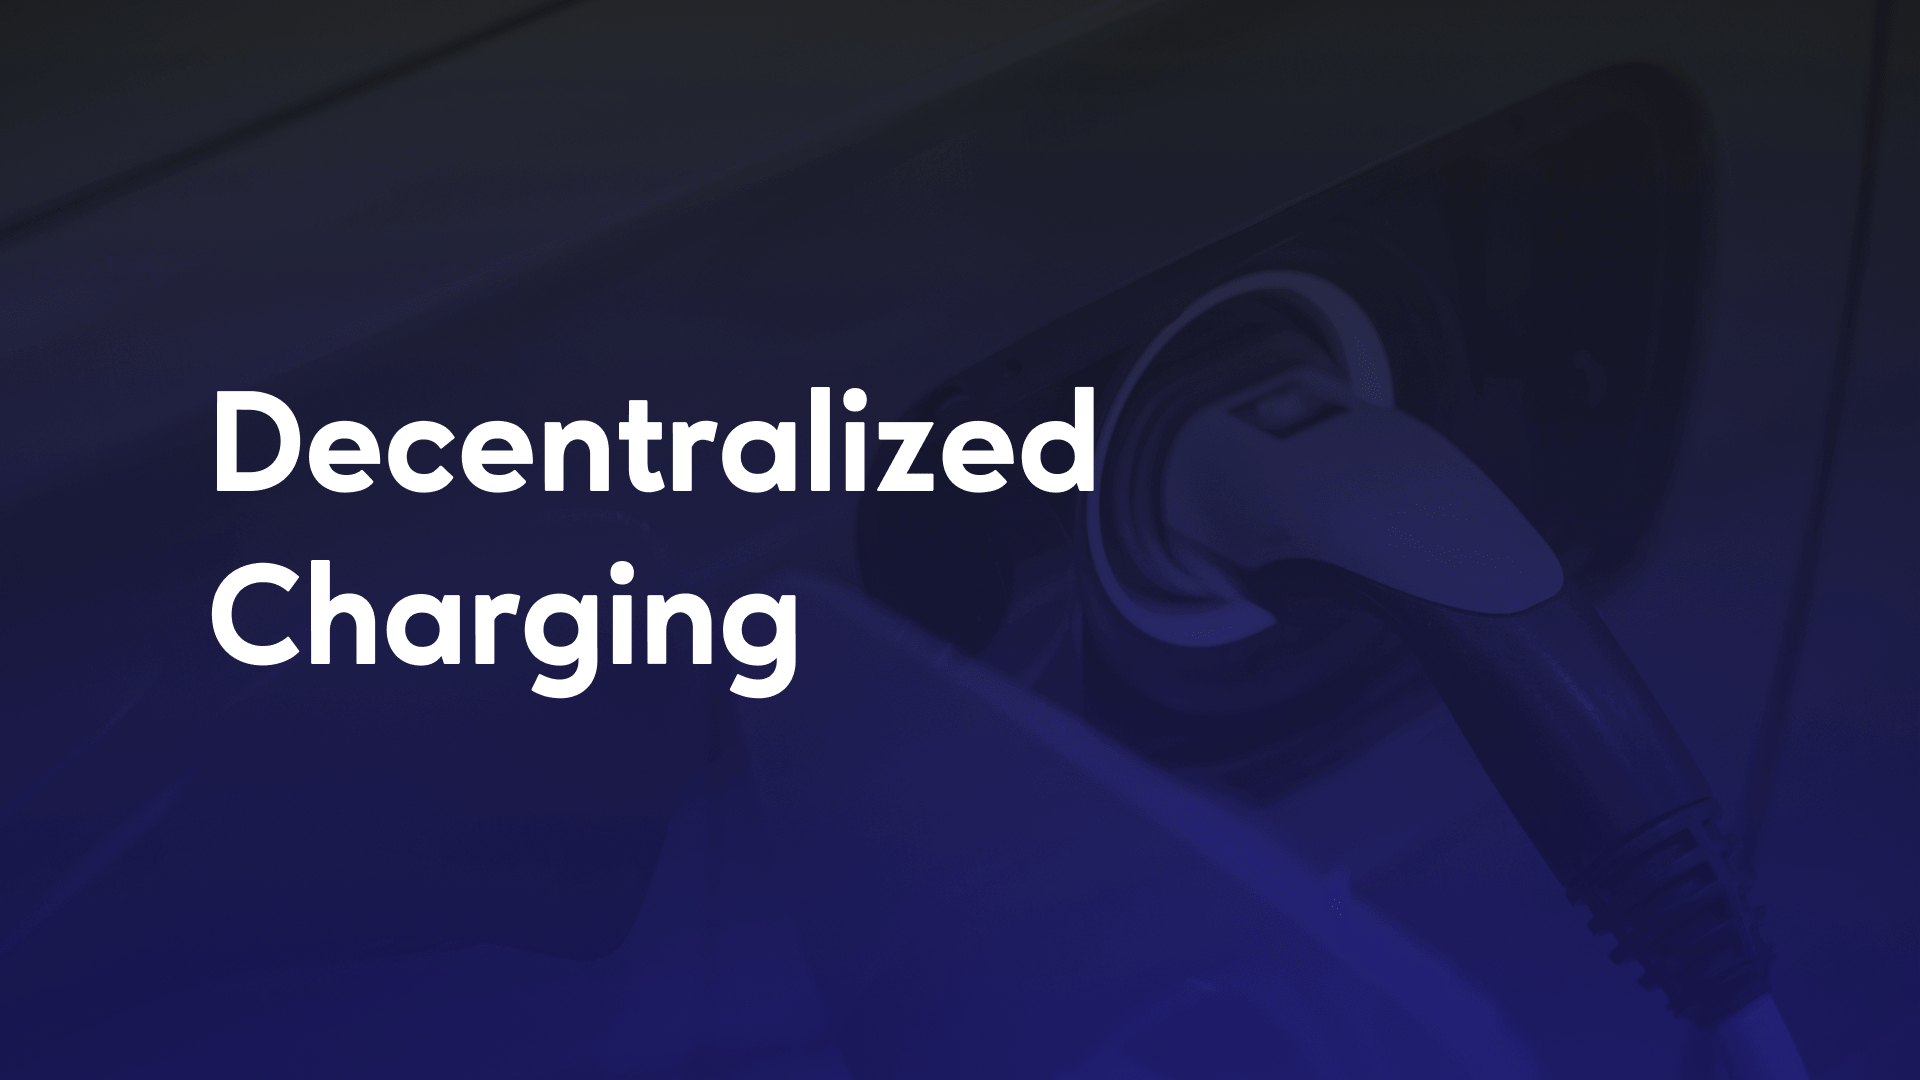 The Decentralized Charging solution uses blockchain to solve e-mobility's biggest bottleneck - range anxiety - by giving electric vehicles decentralized identity, access and payment abilities.